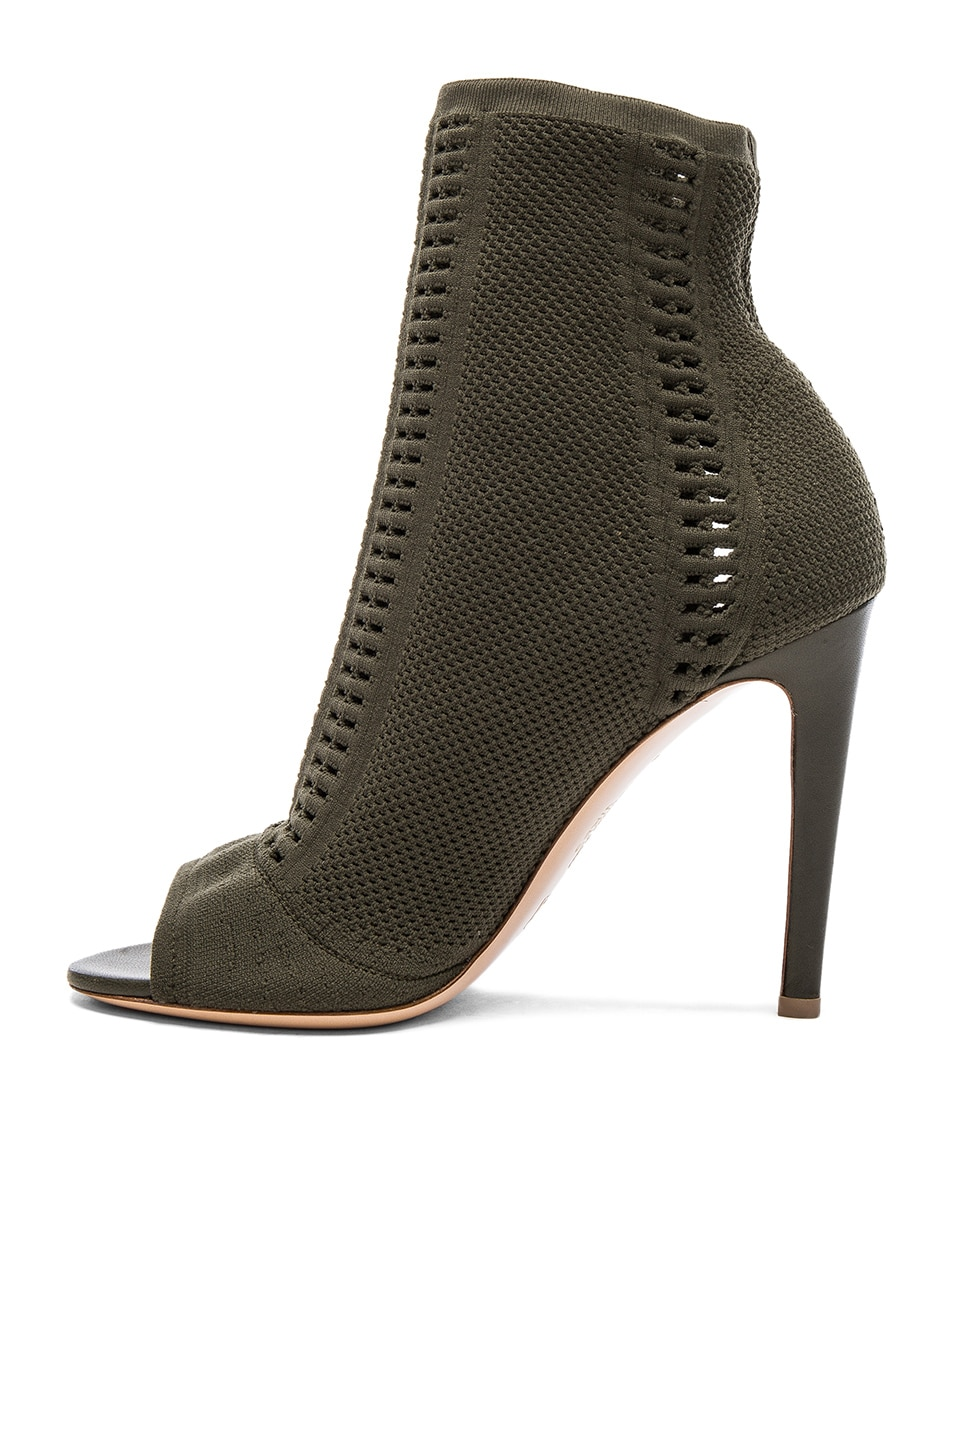 Image 5 of Gianvito Rossi Knit Booties in Army